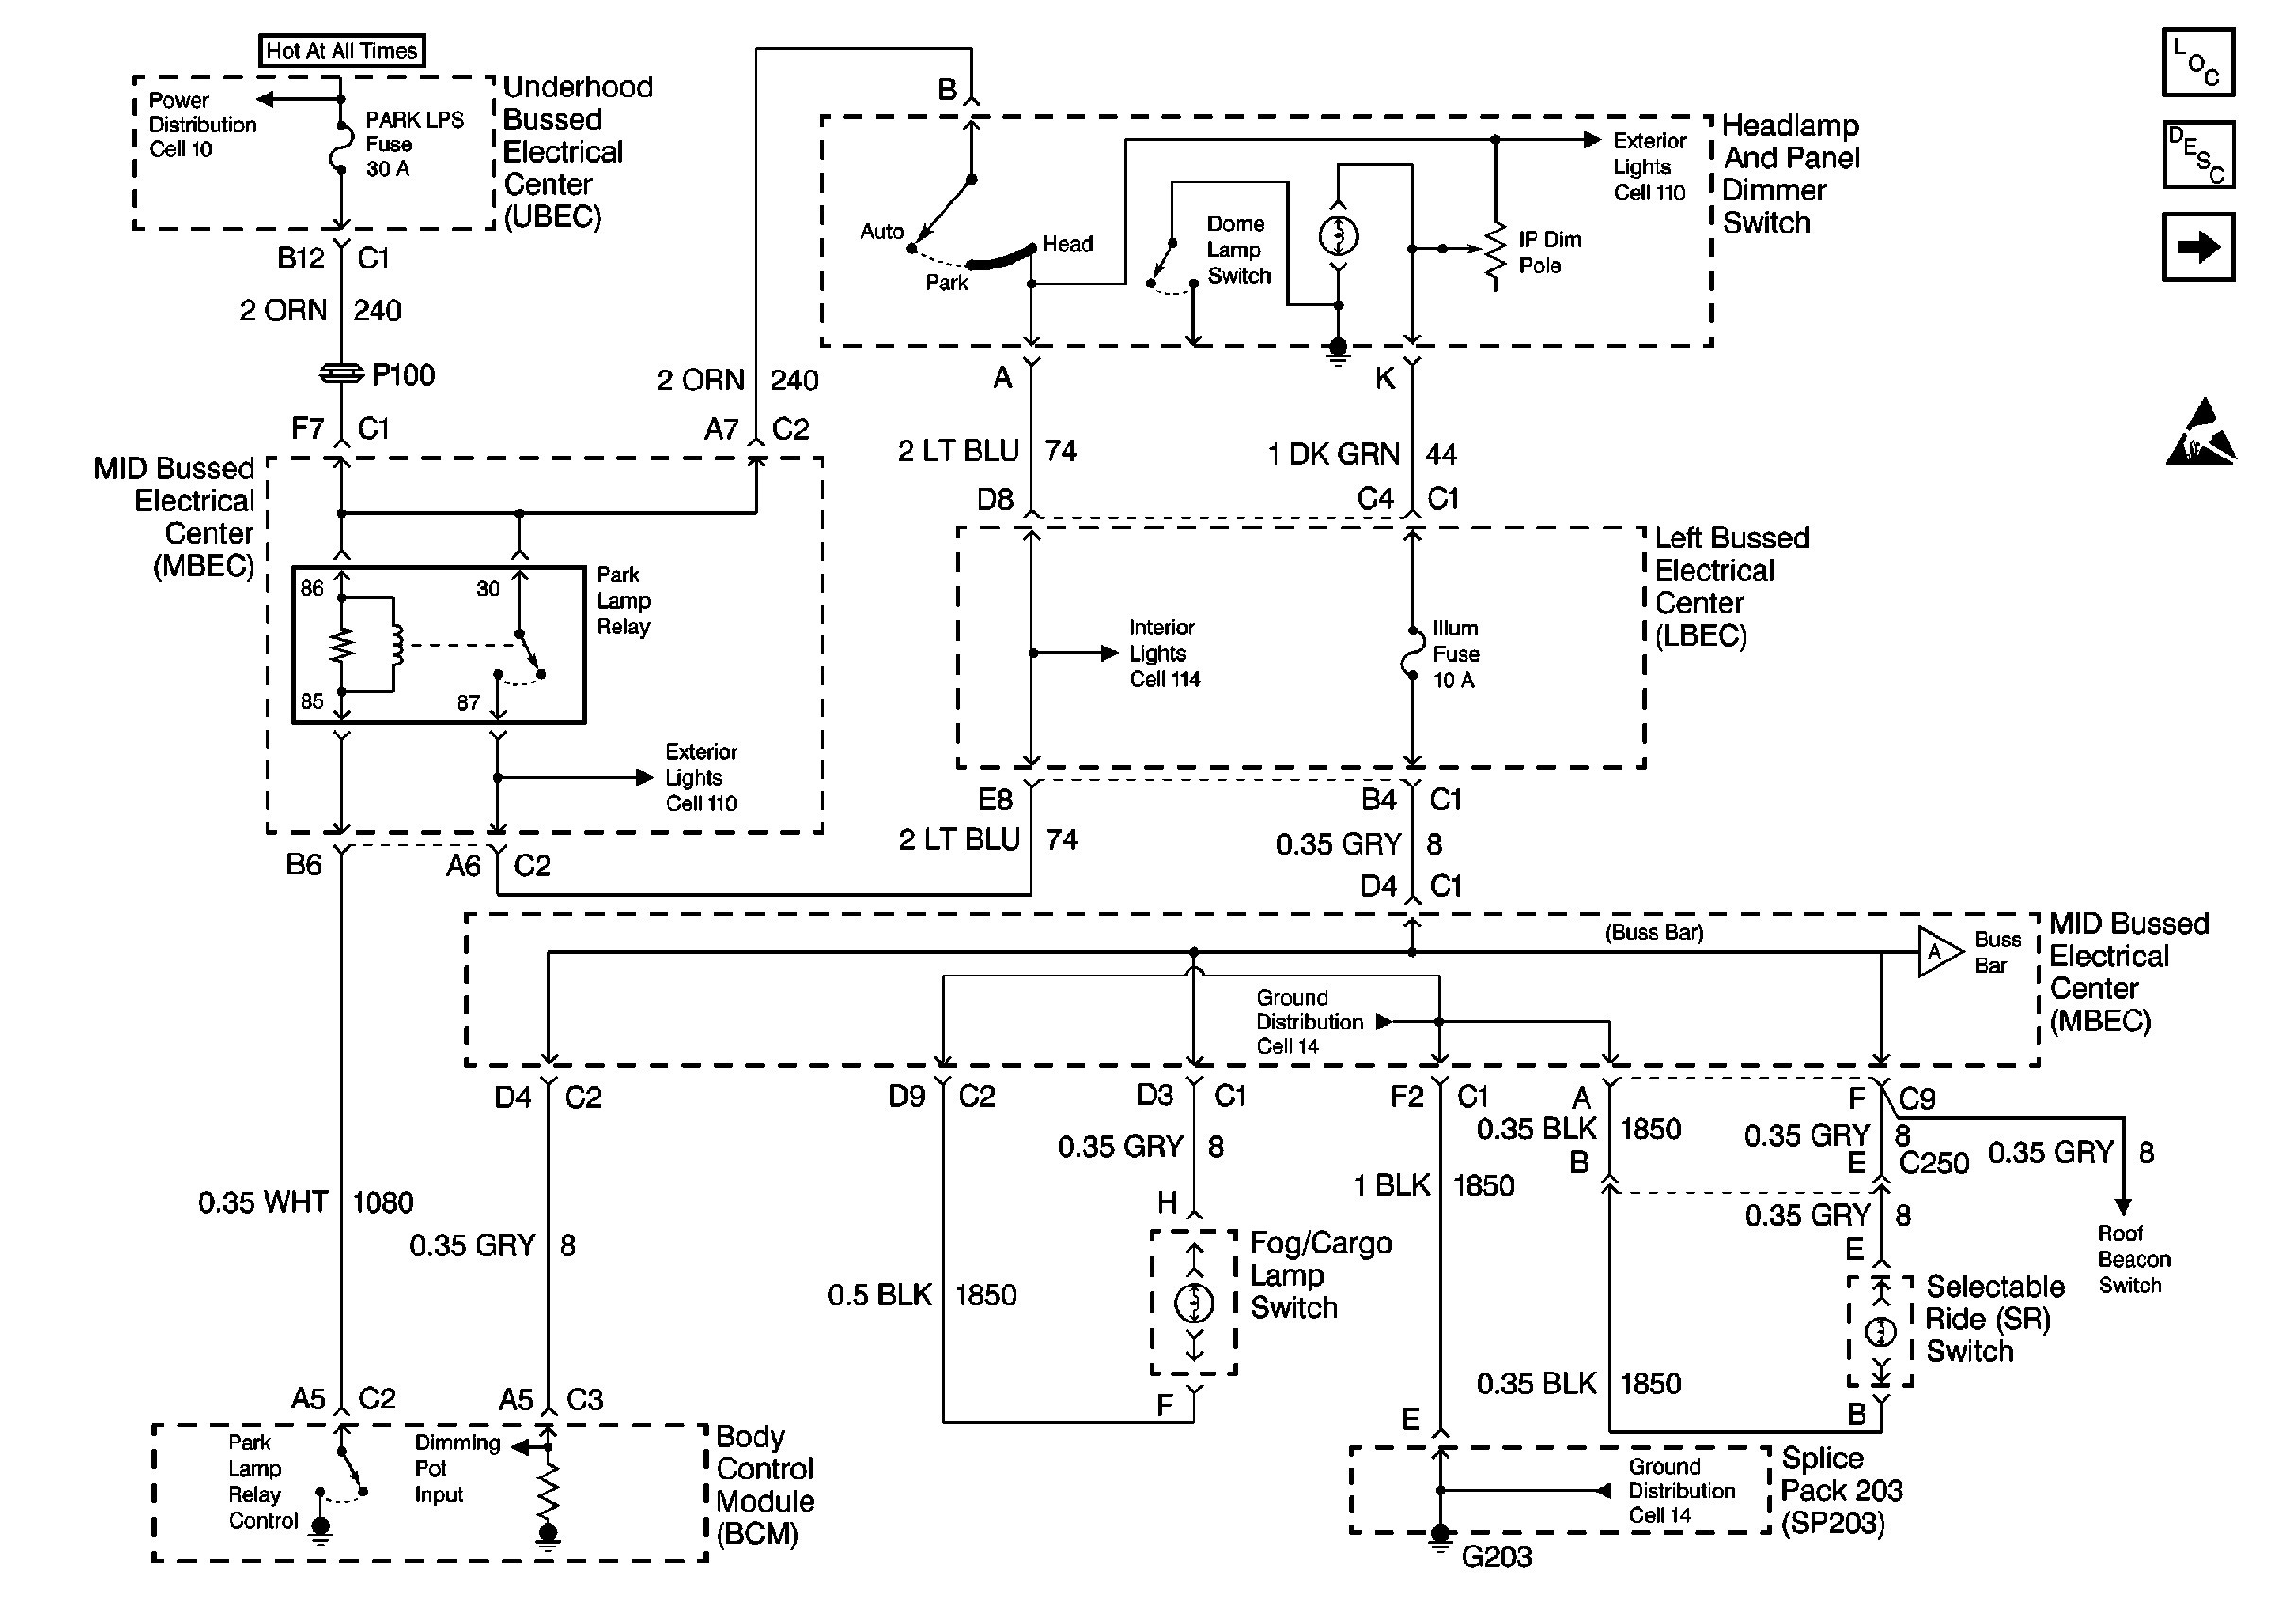 Battery Charging Wiring 1991 Chevy Obs -95 Toyota Camry Wiring Diagram |  Begeboy Wiring Diagram Source | Battery Charging Wiring 1991 Chevy Obs |  | Begeboy Wiring Diagram Source